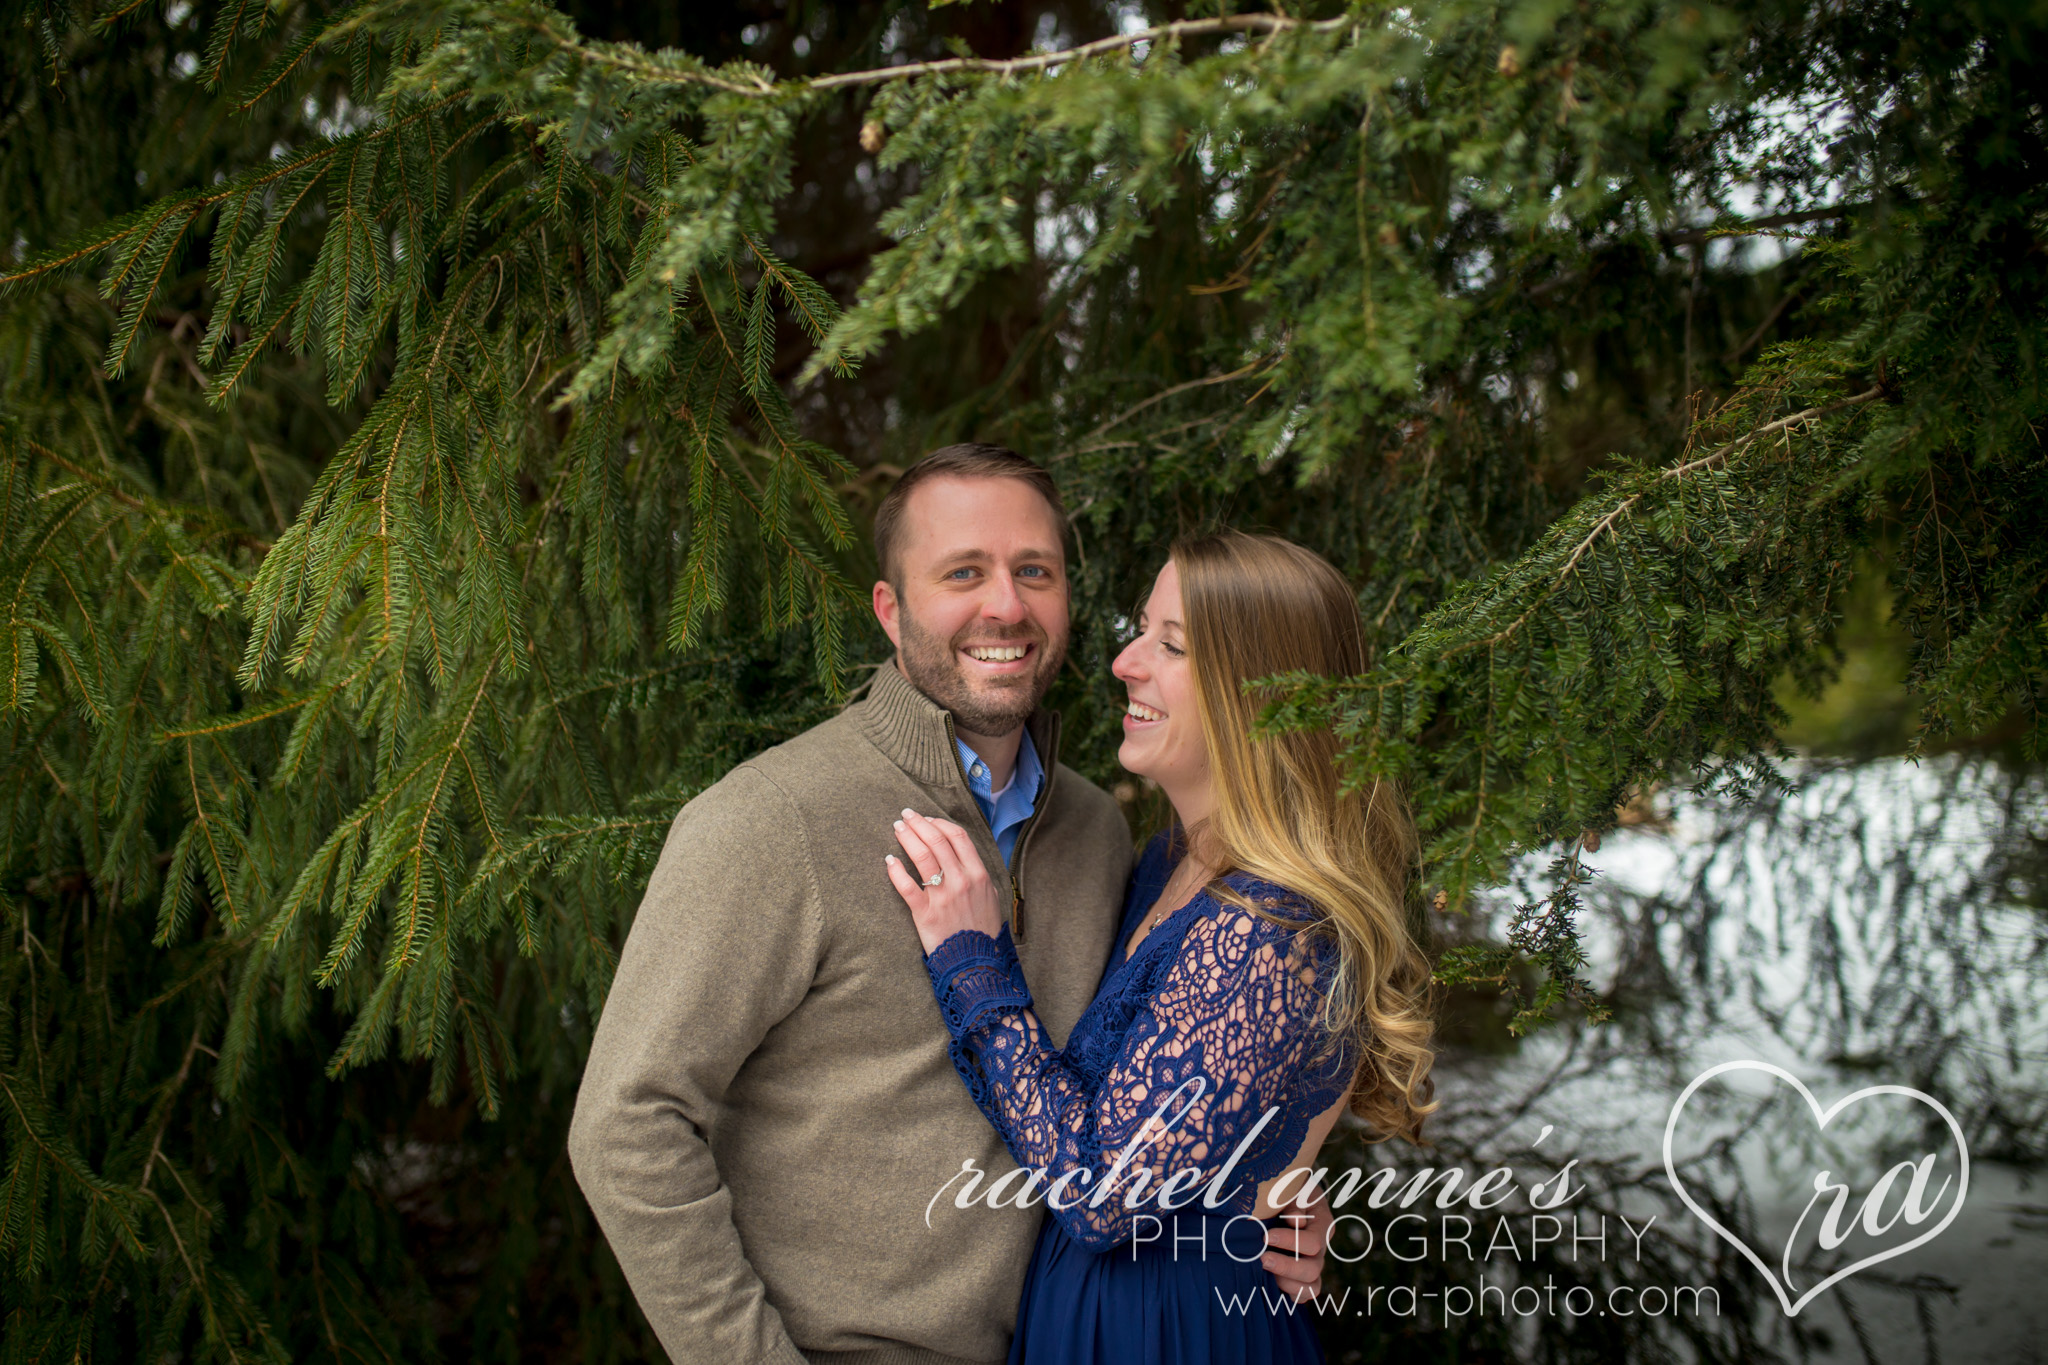 072-JKM-DUBOIS-PA-ENGAGEMENT-PHOTOGRAPHY.jpg